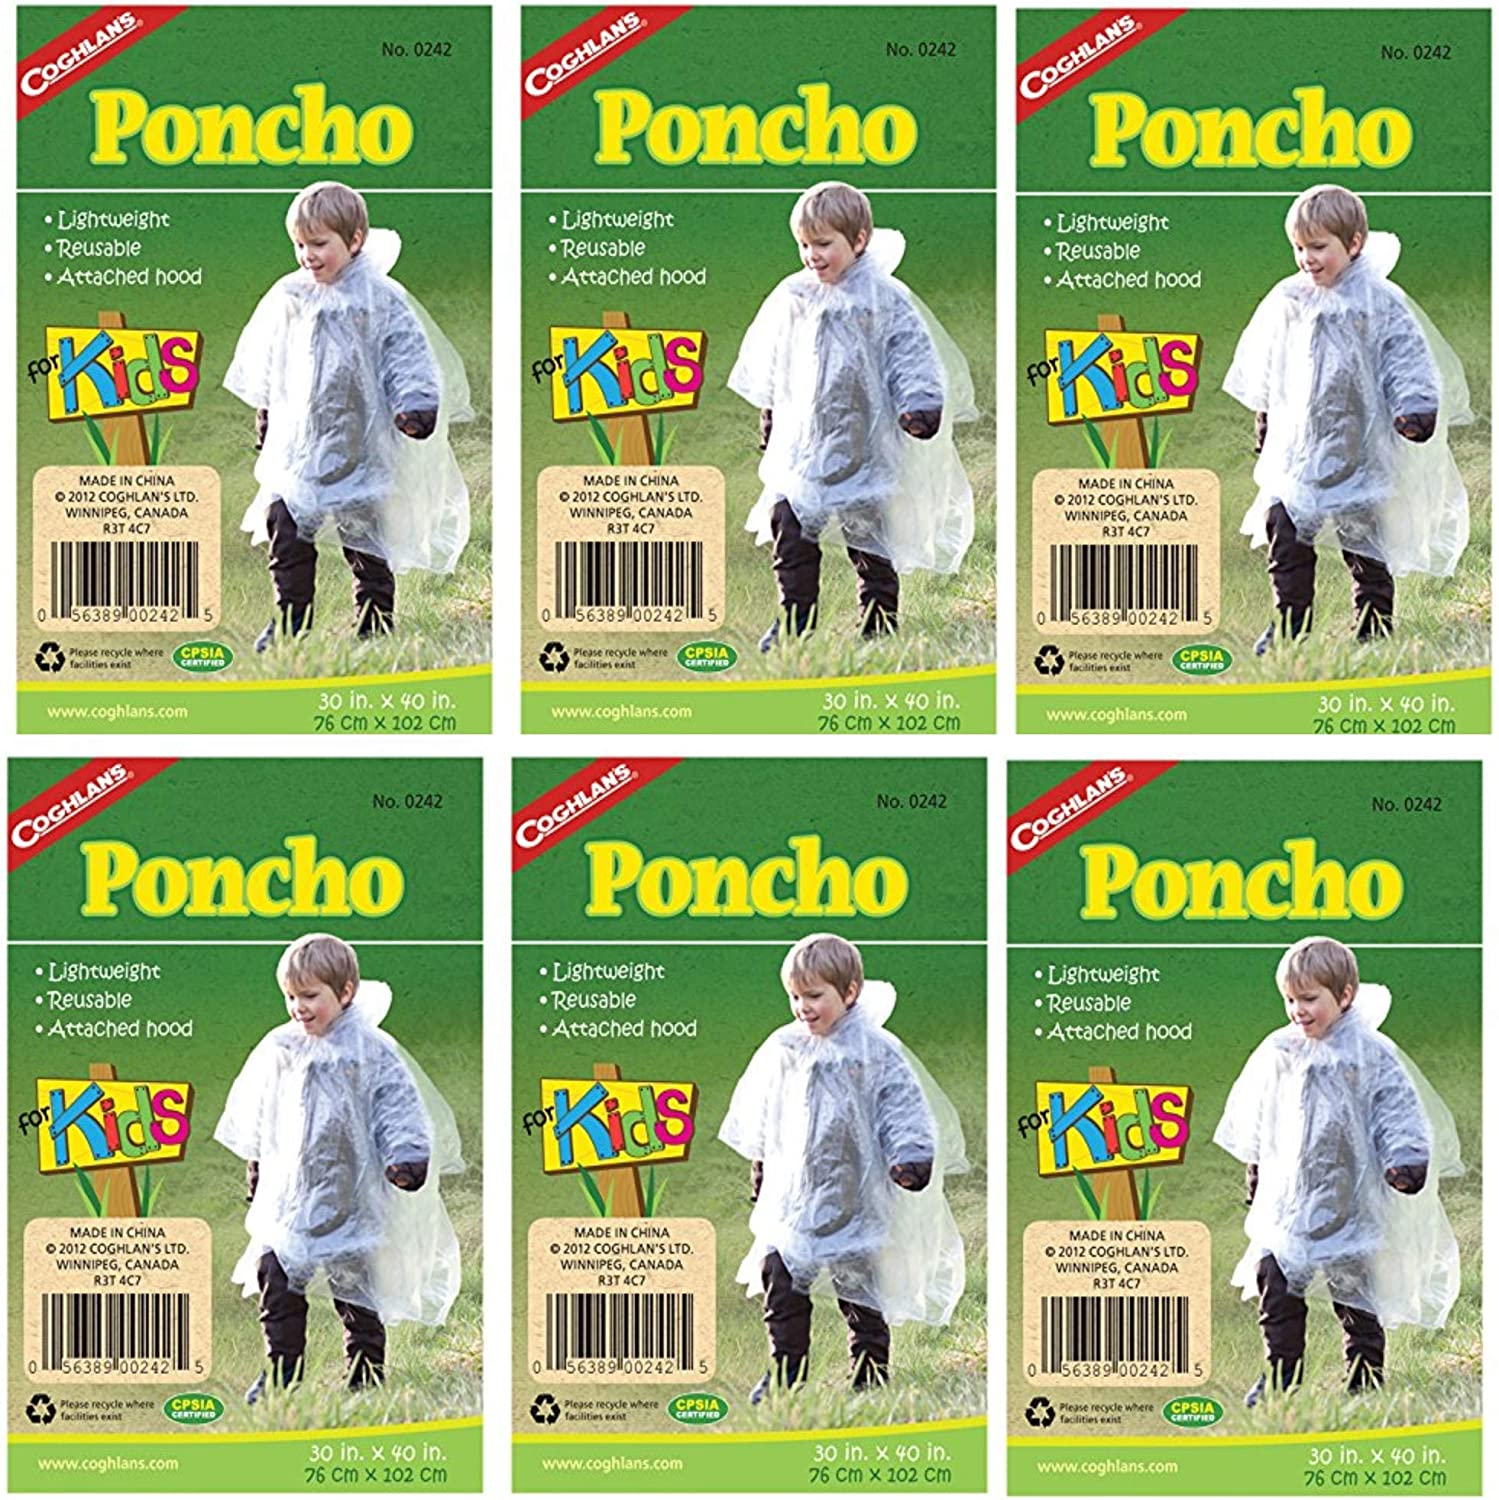 Coghlan's Poncho El Paso Super sale Mall for Kids Pack 6 of